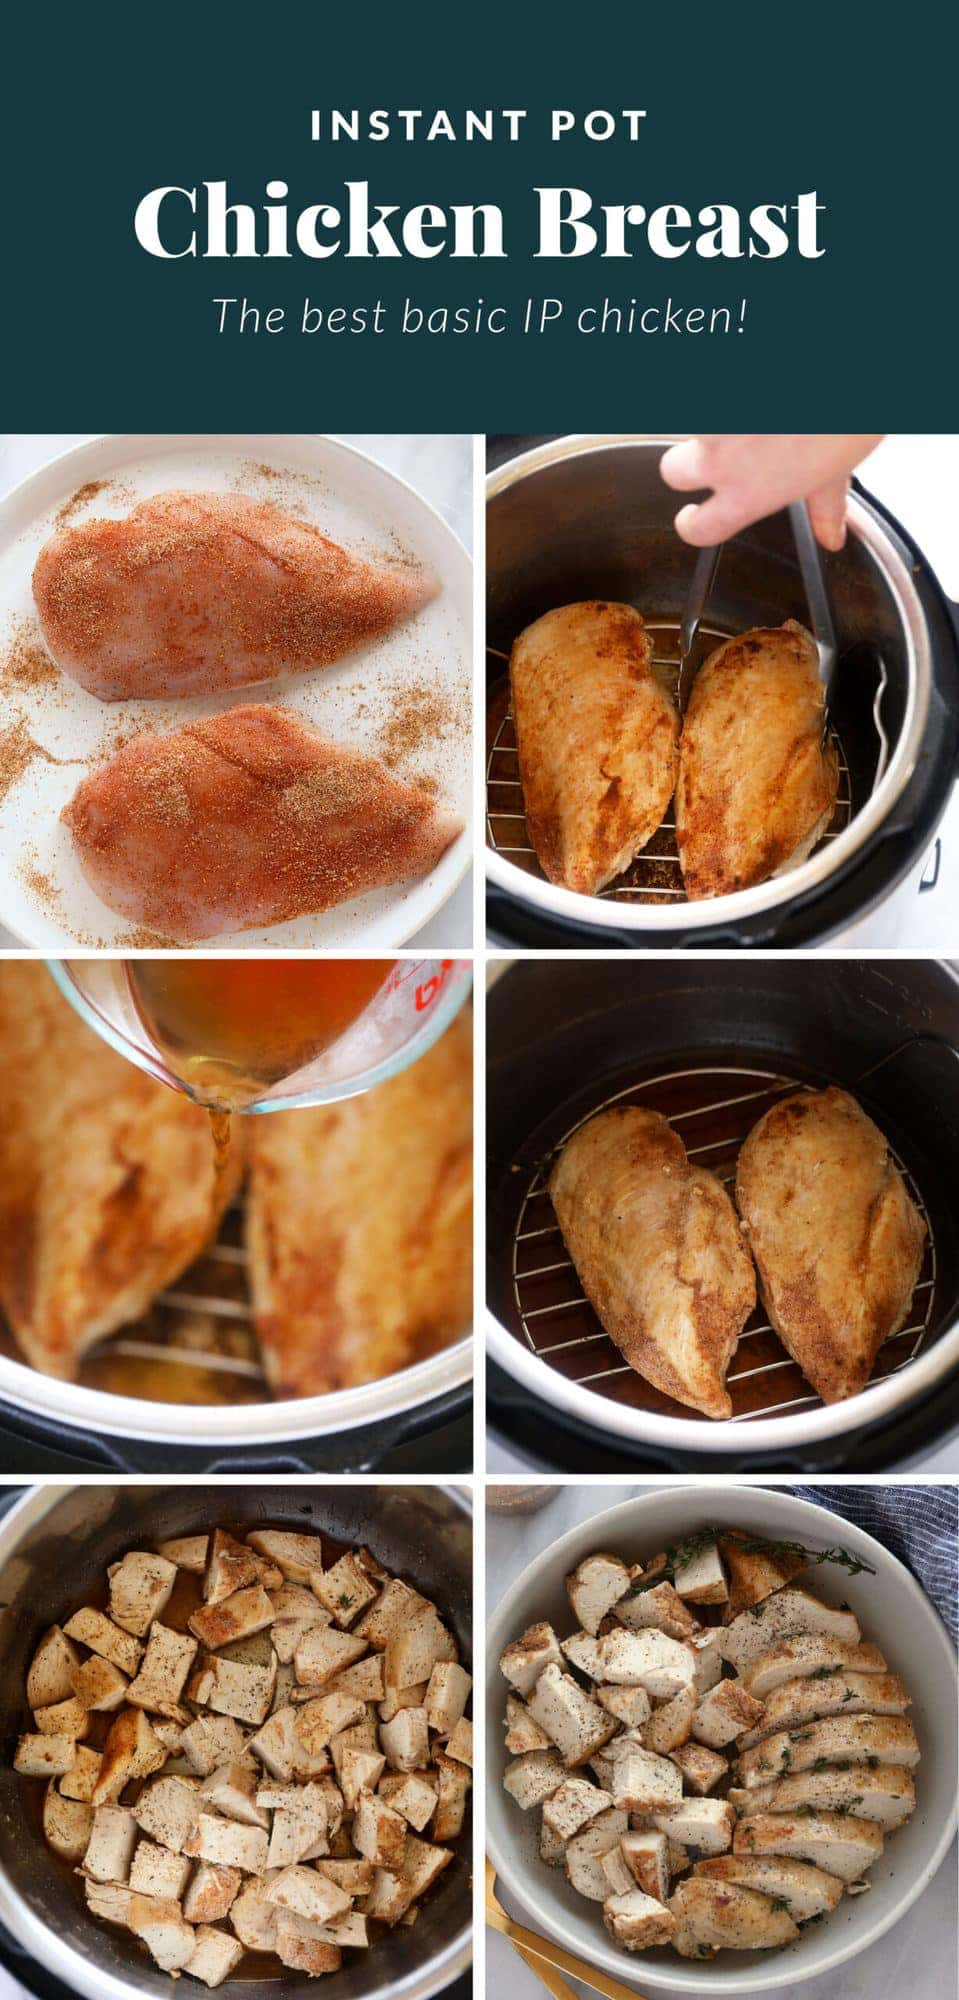 A step by step image of how to make Instant Pot chicken breast.